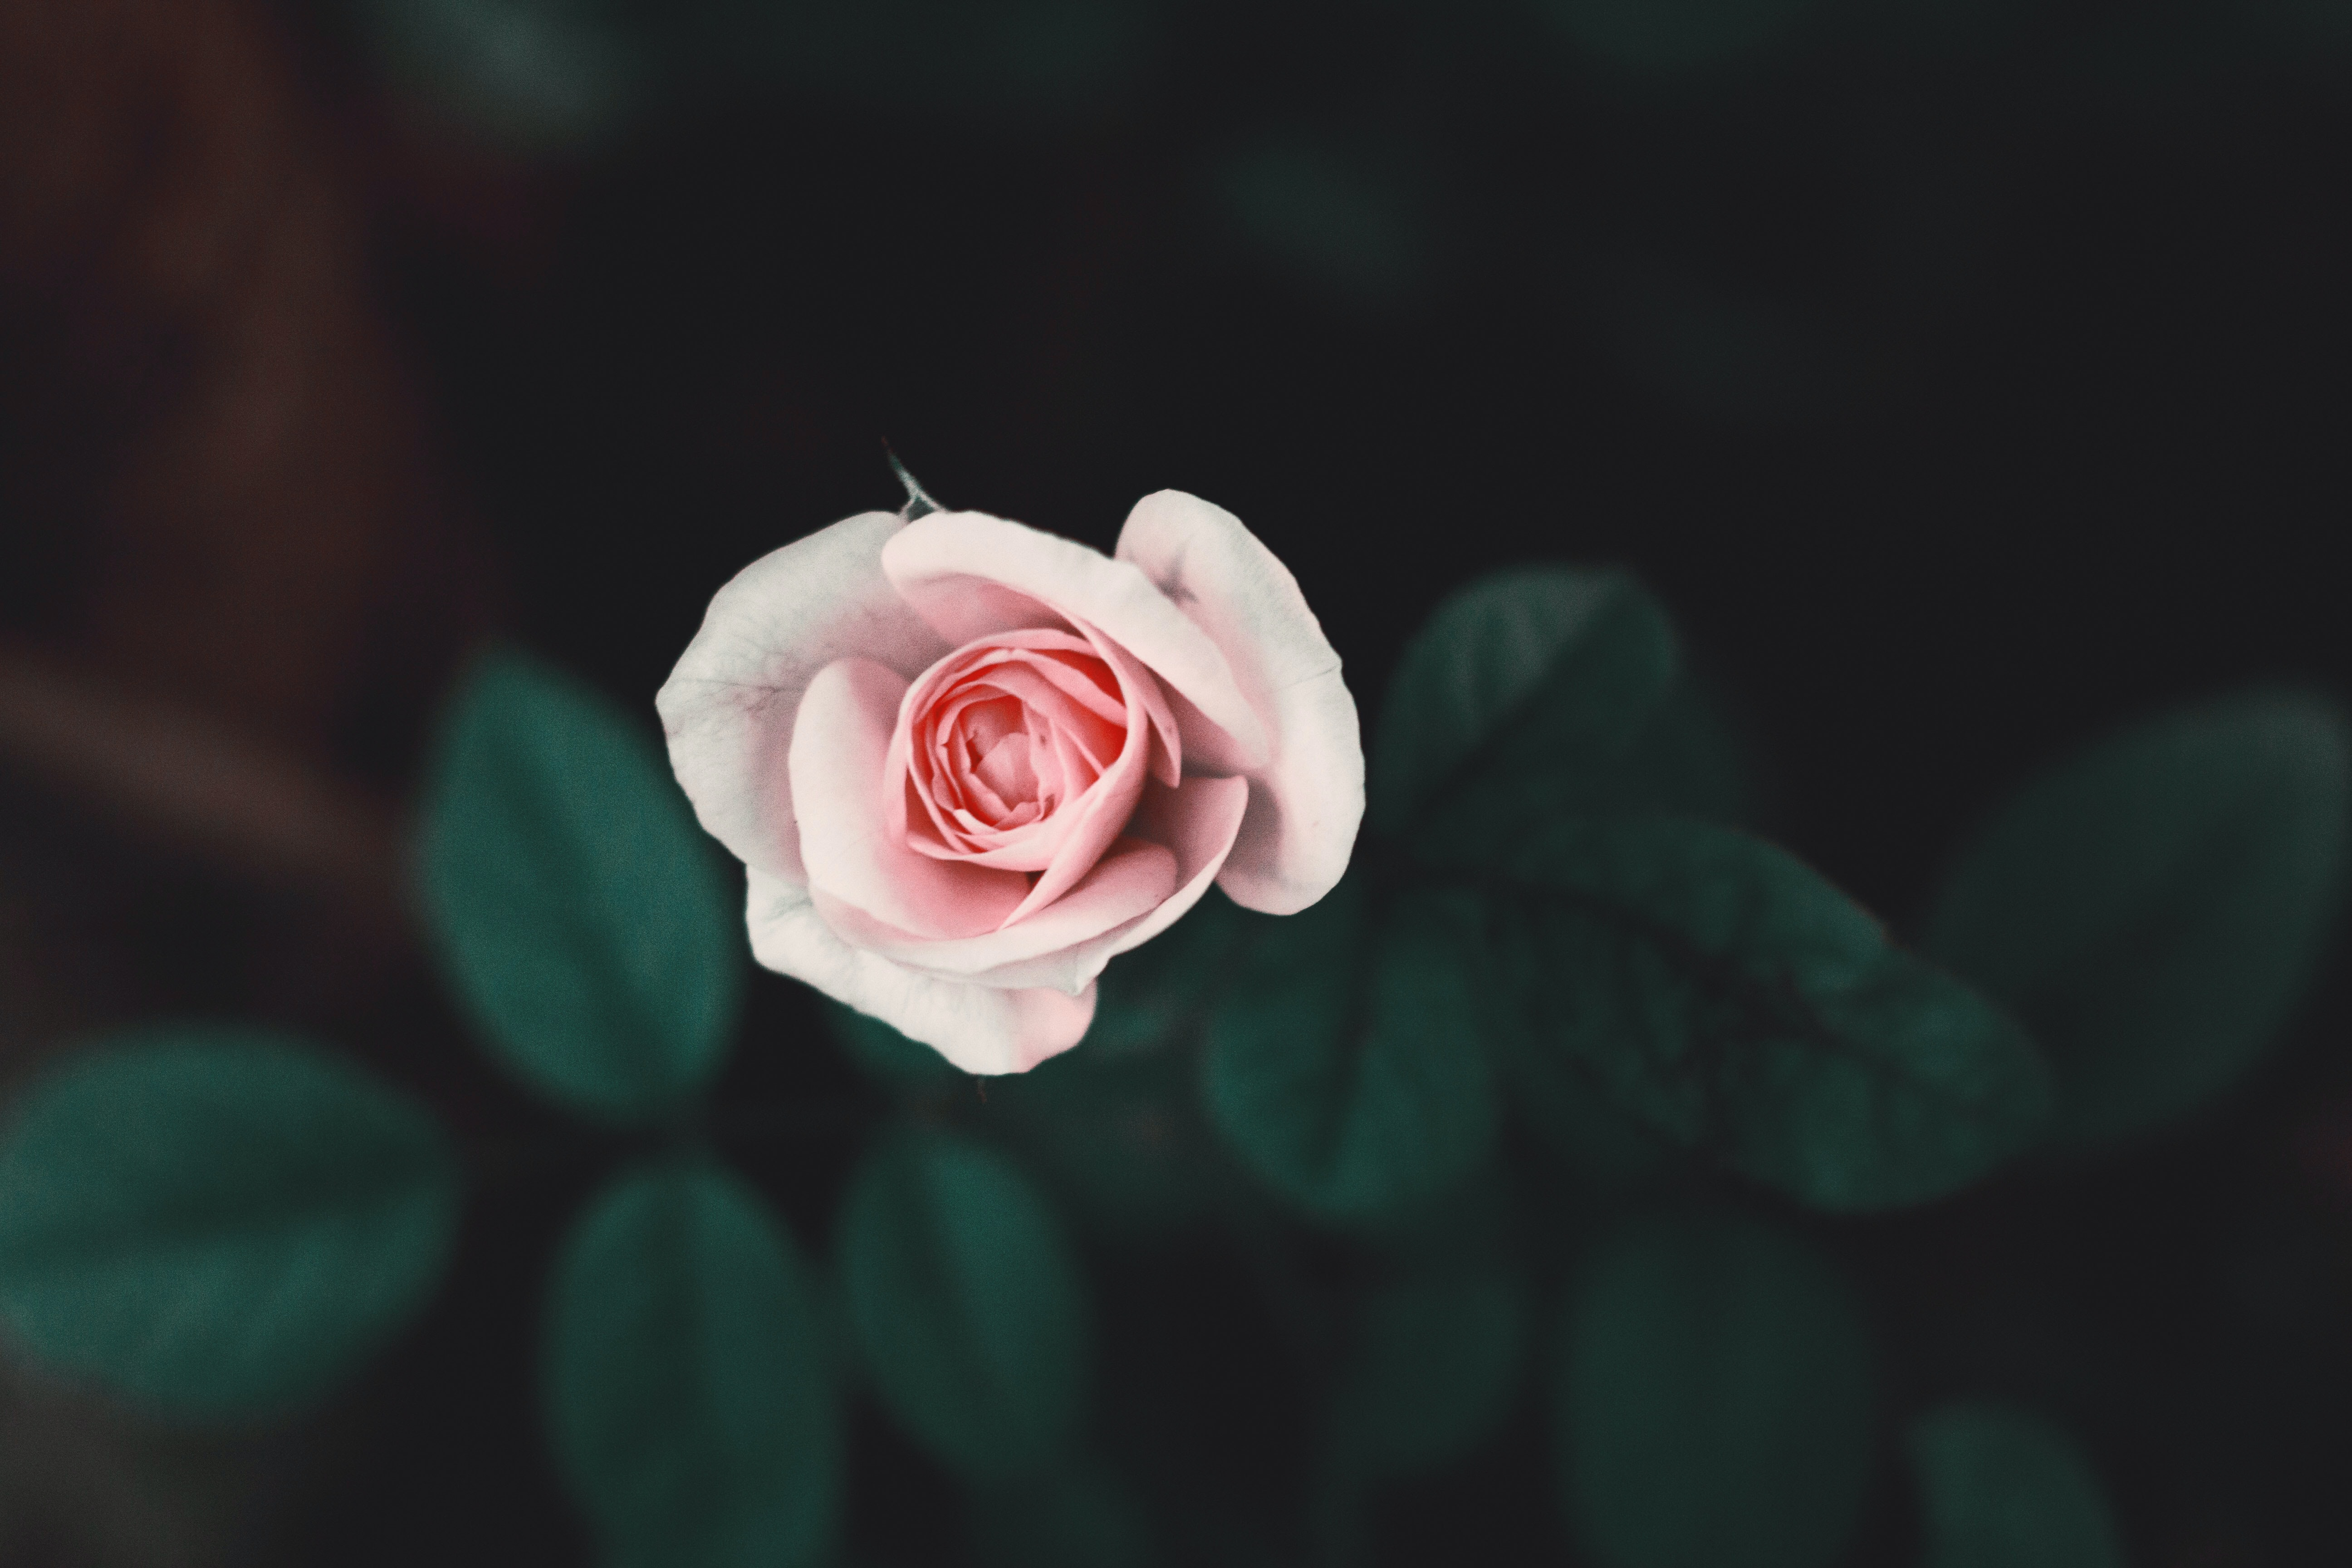 focus photo of pink rose flower